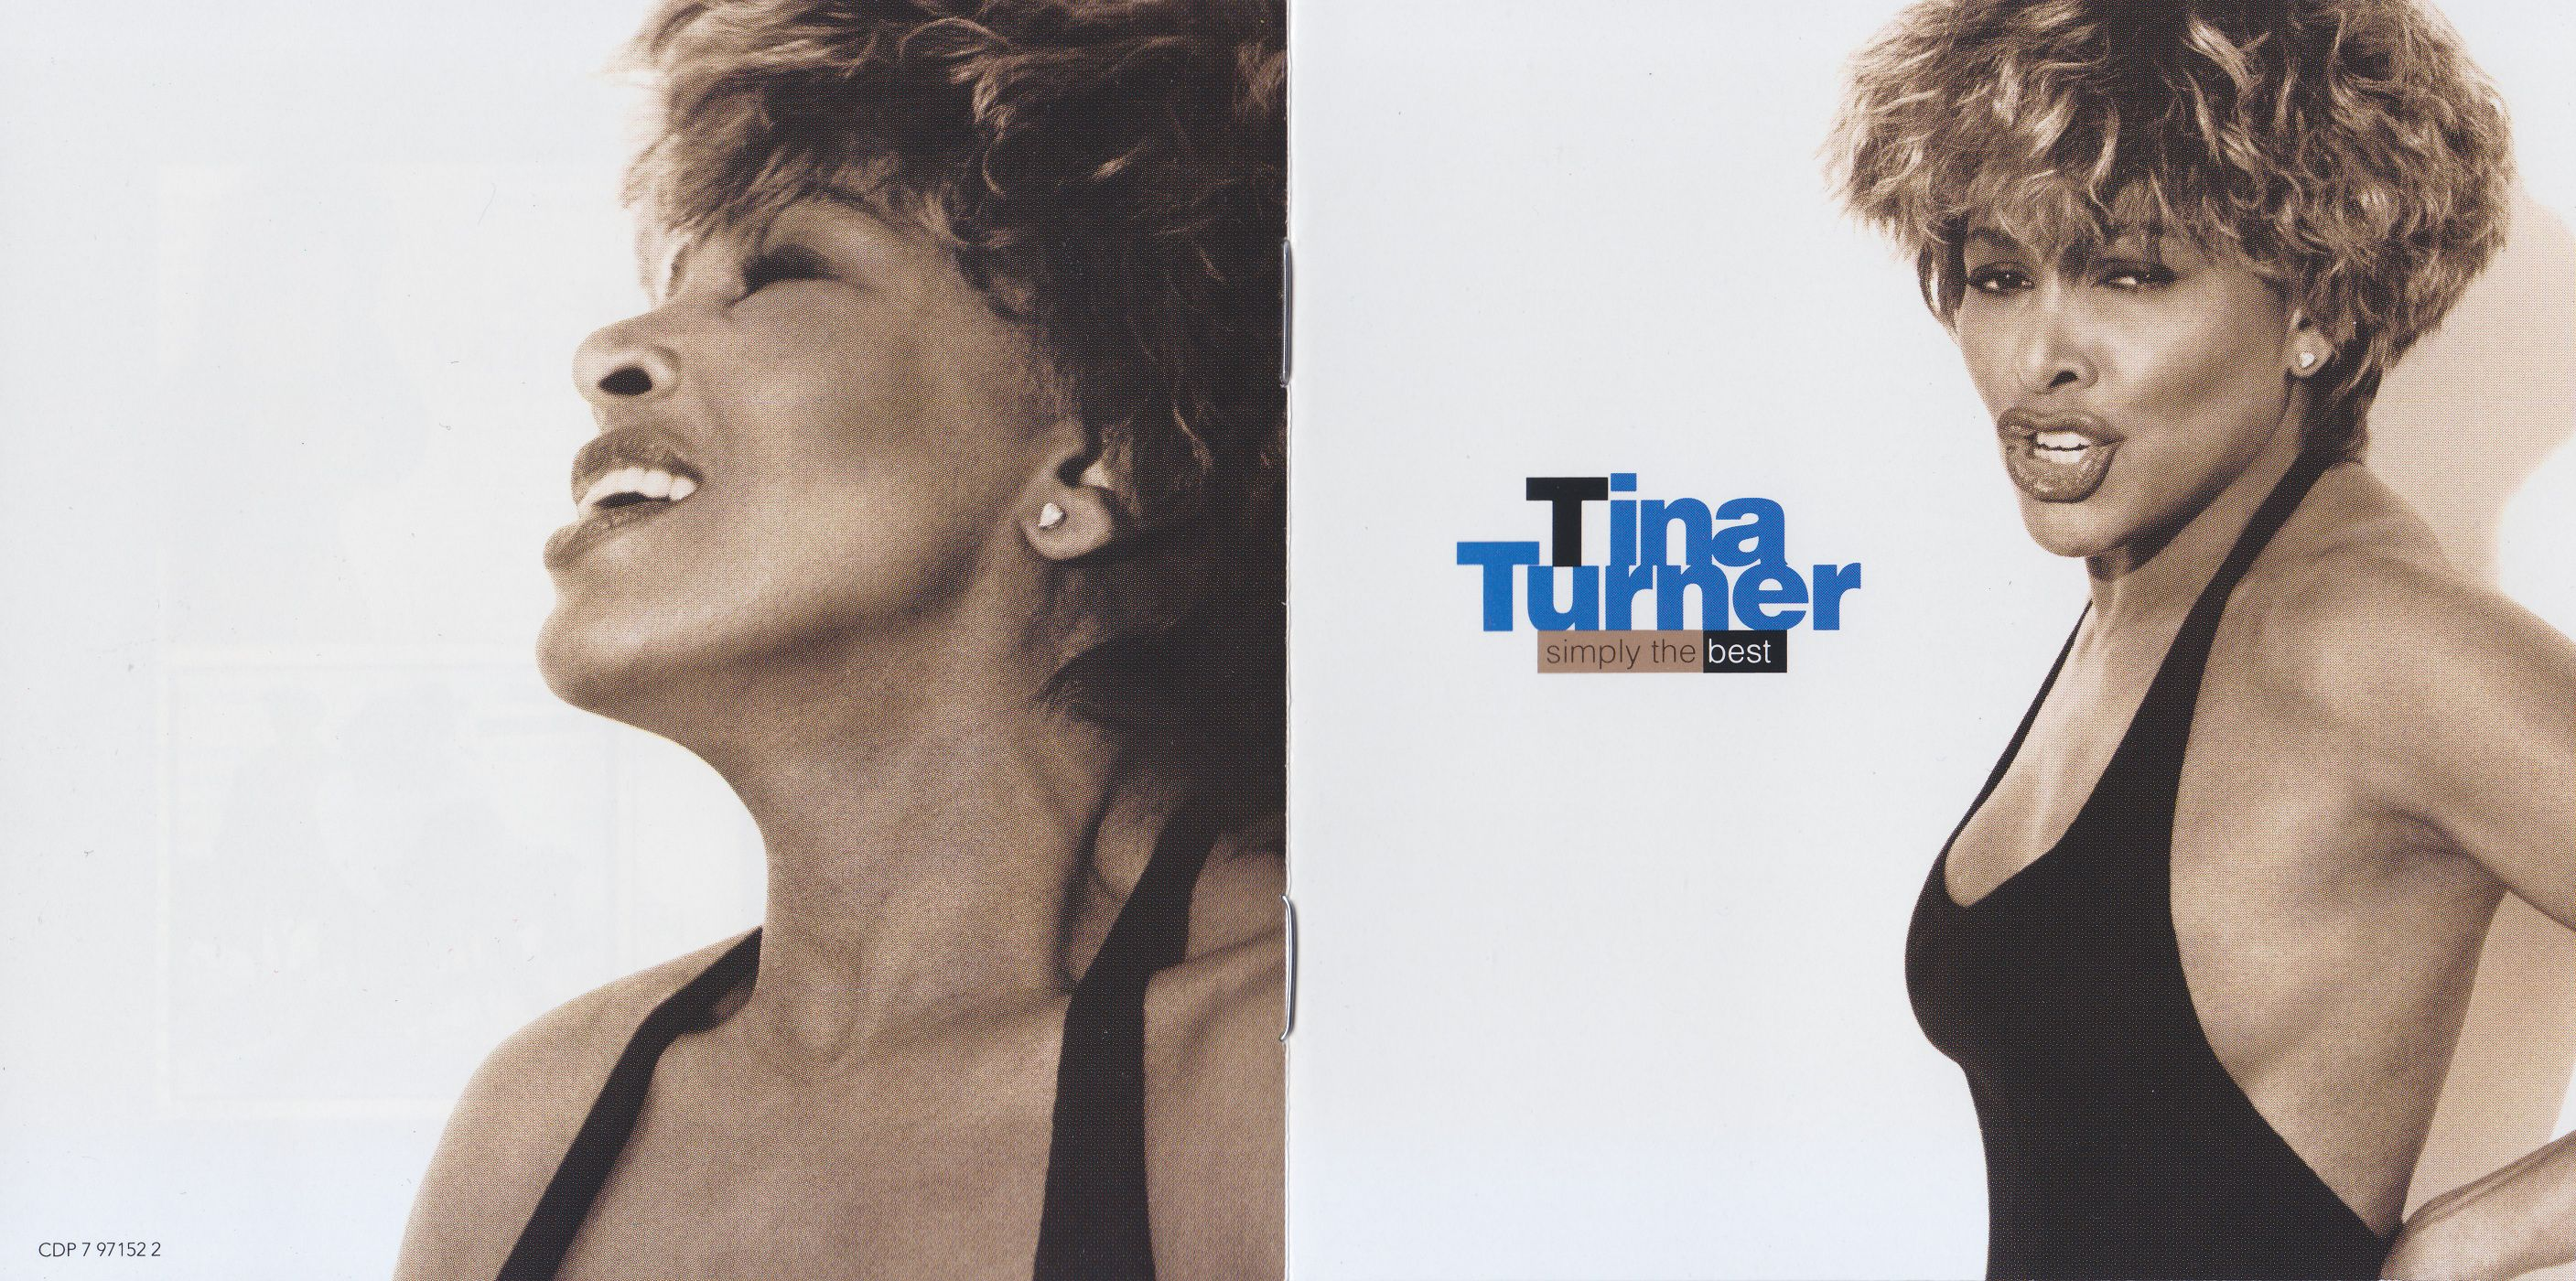 Tina Turner - Simply The Best album cover